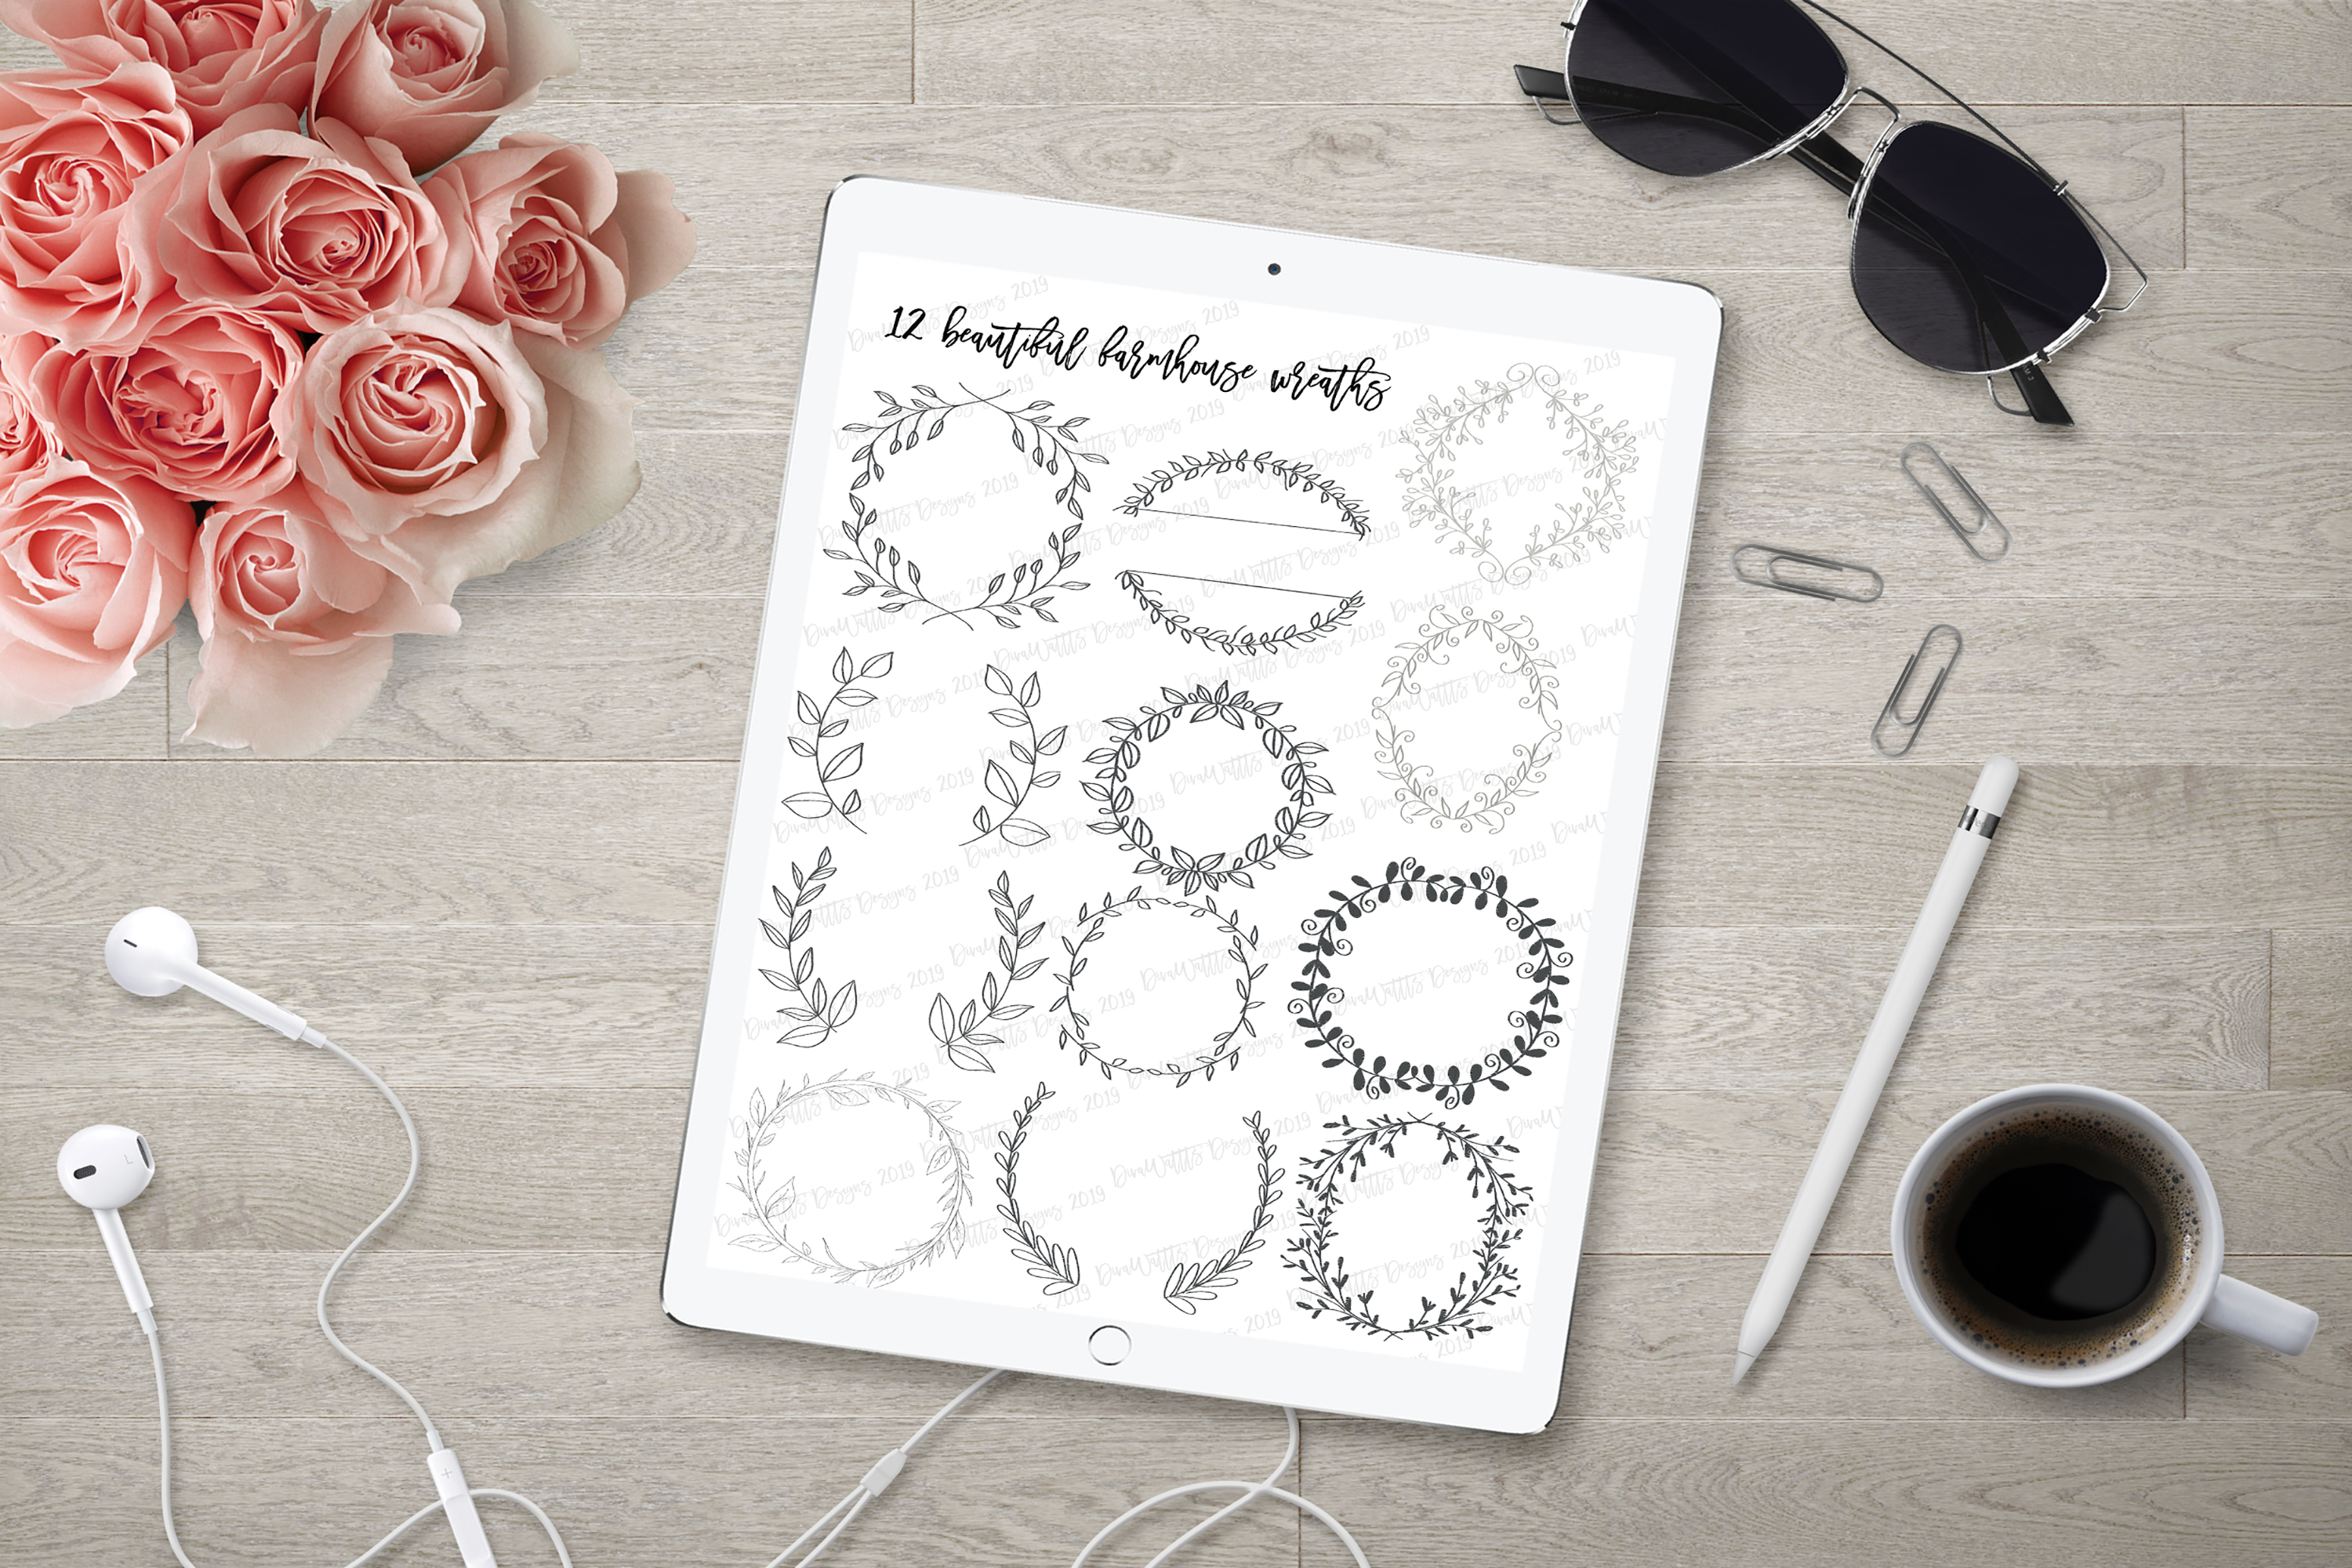 Procreate Farmhouse Wreath Bundle of 12 Stamps and Bonus example image 2